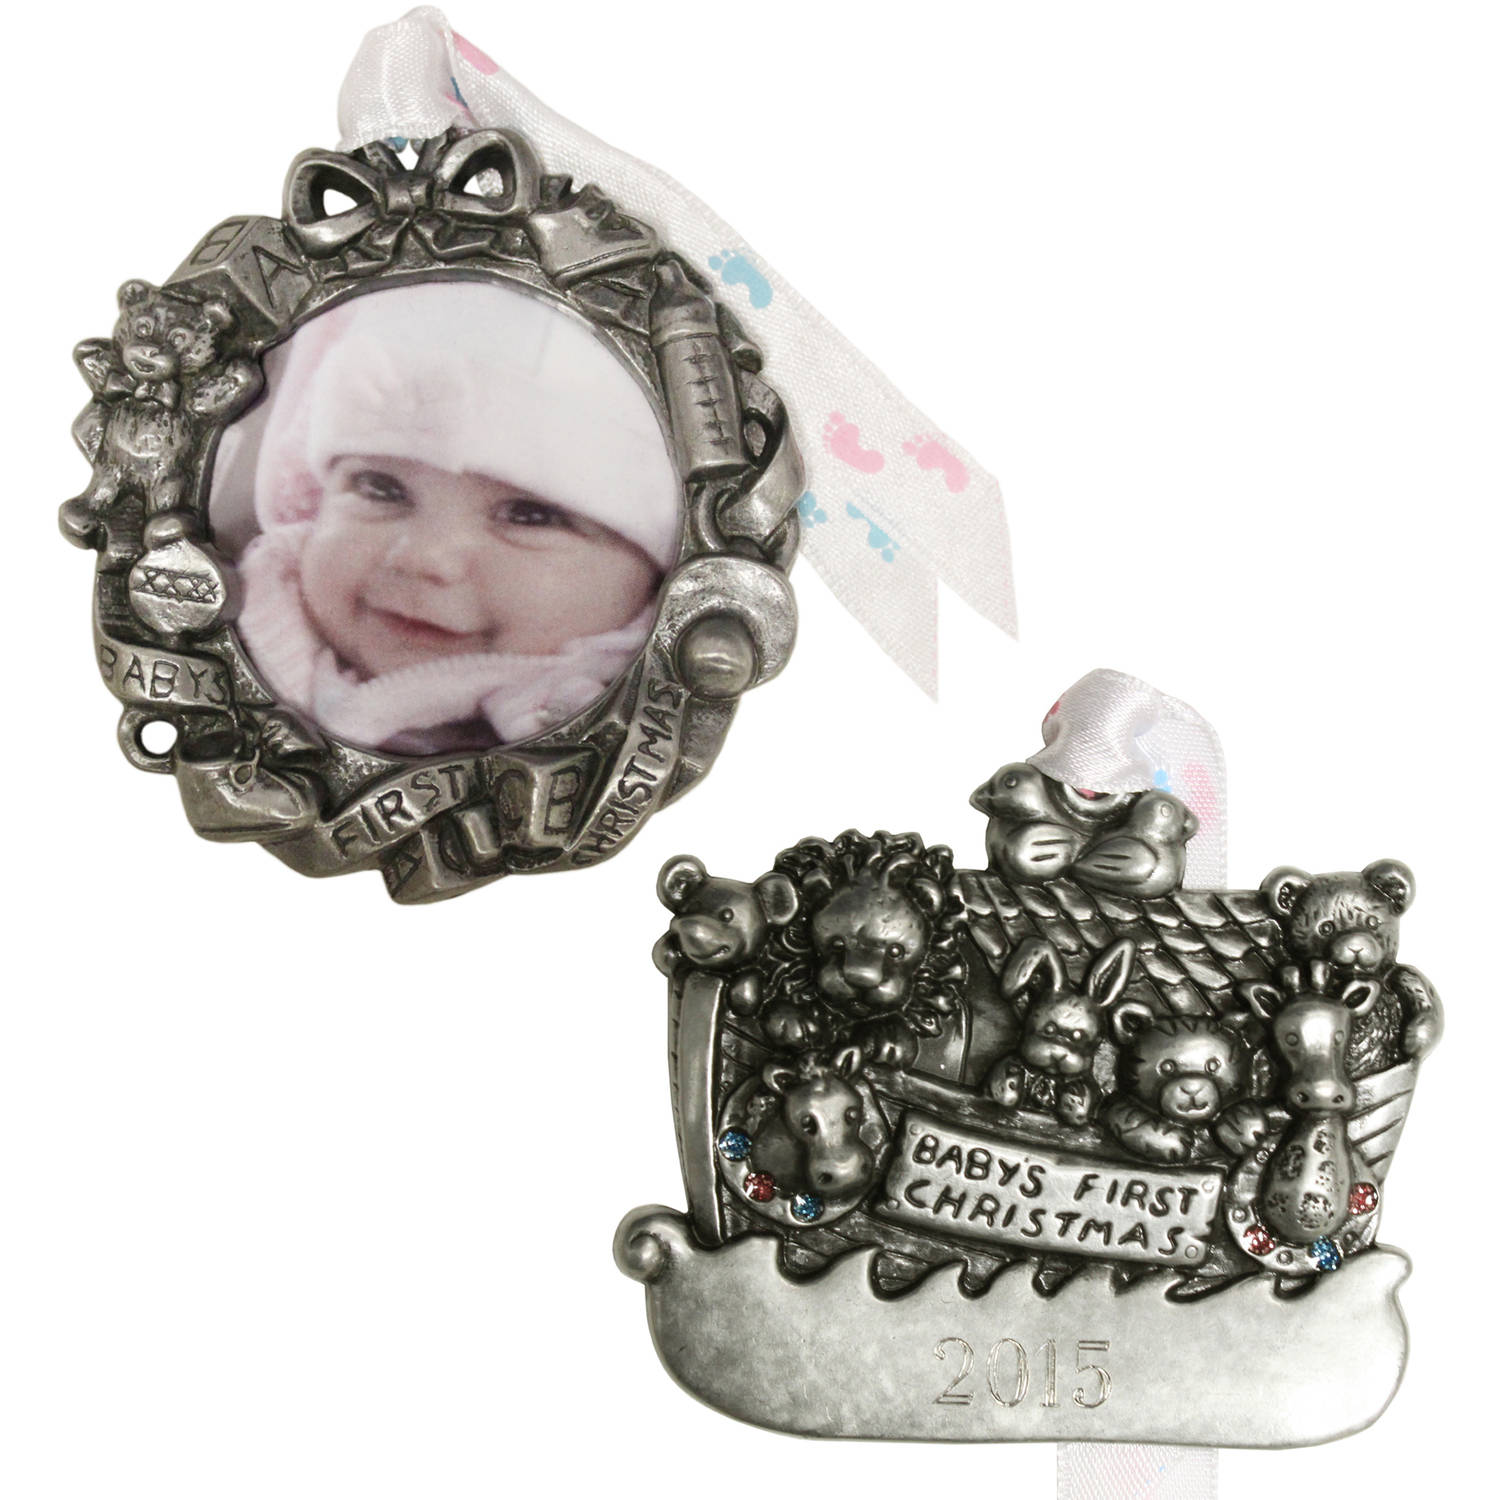 Personalized Gloria Duchin 2pc Baby's First Ornament Gift Set